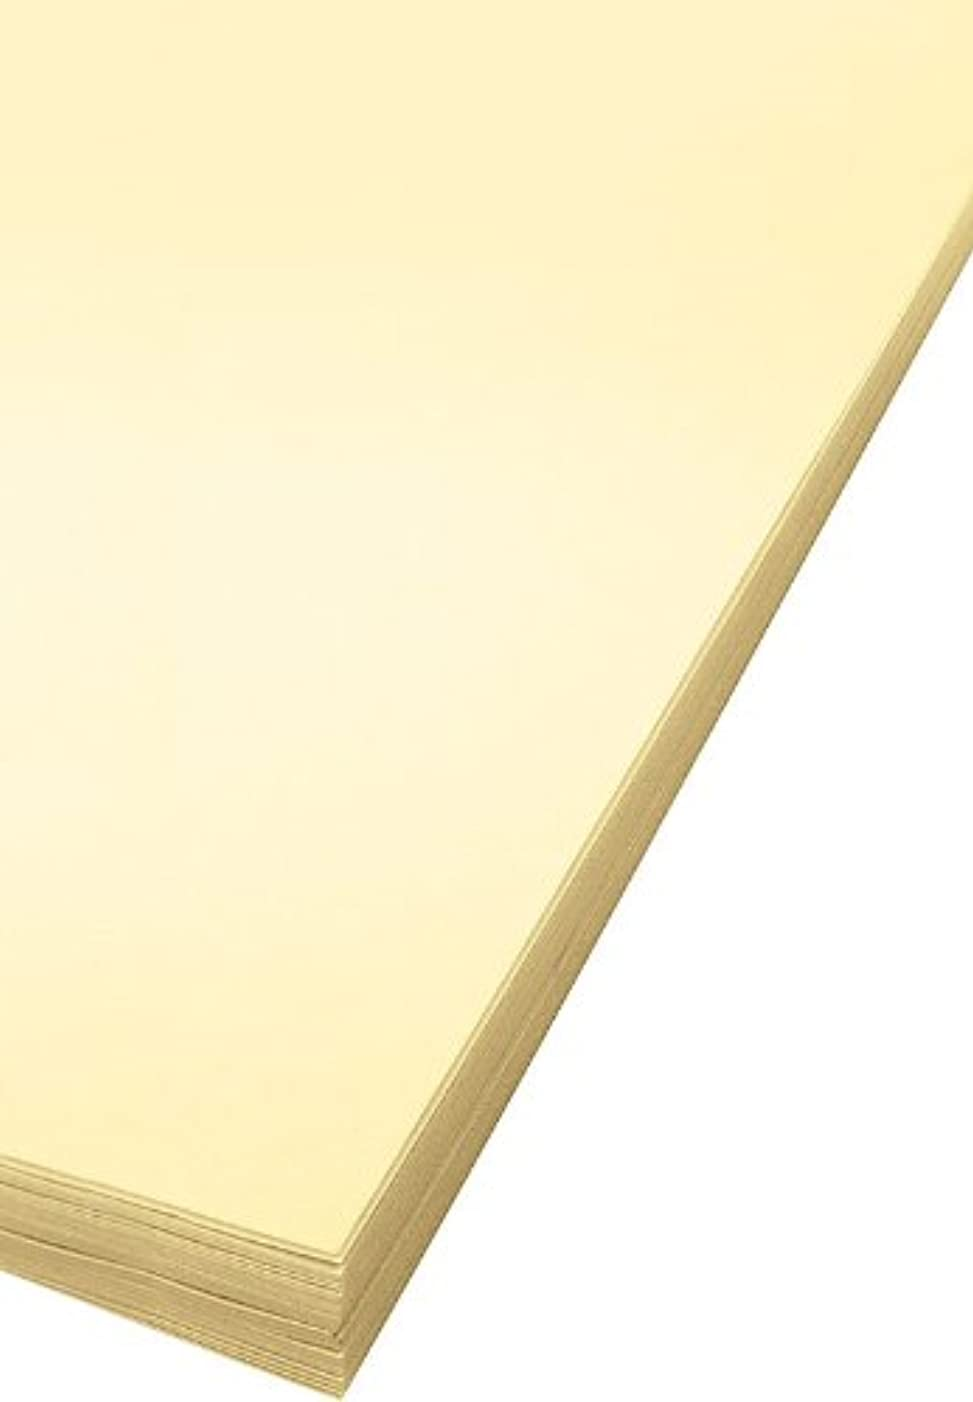 Bee Paper Oak Tag Board Pack, 18-Inch by 24-Inch, 100 Sheets per Pack